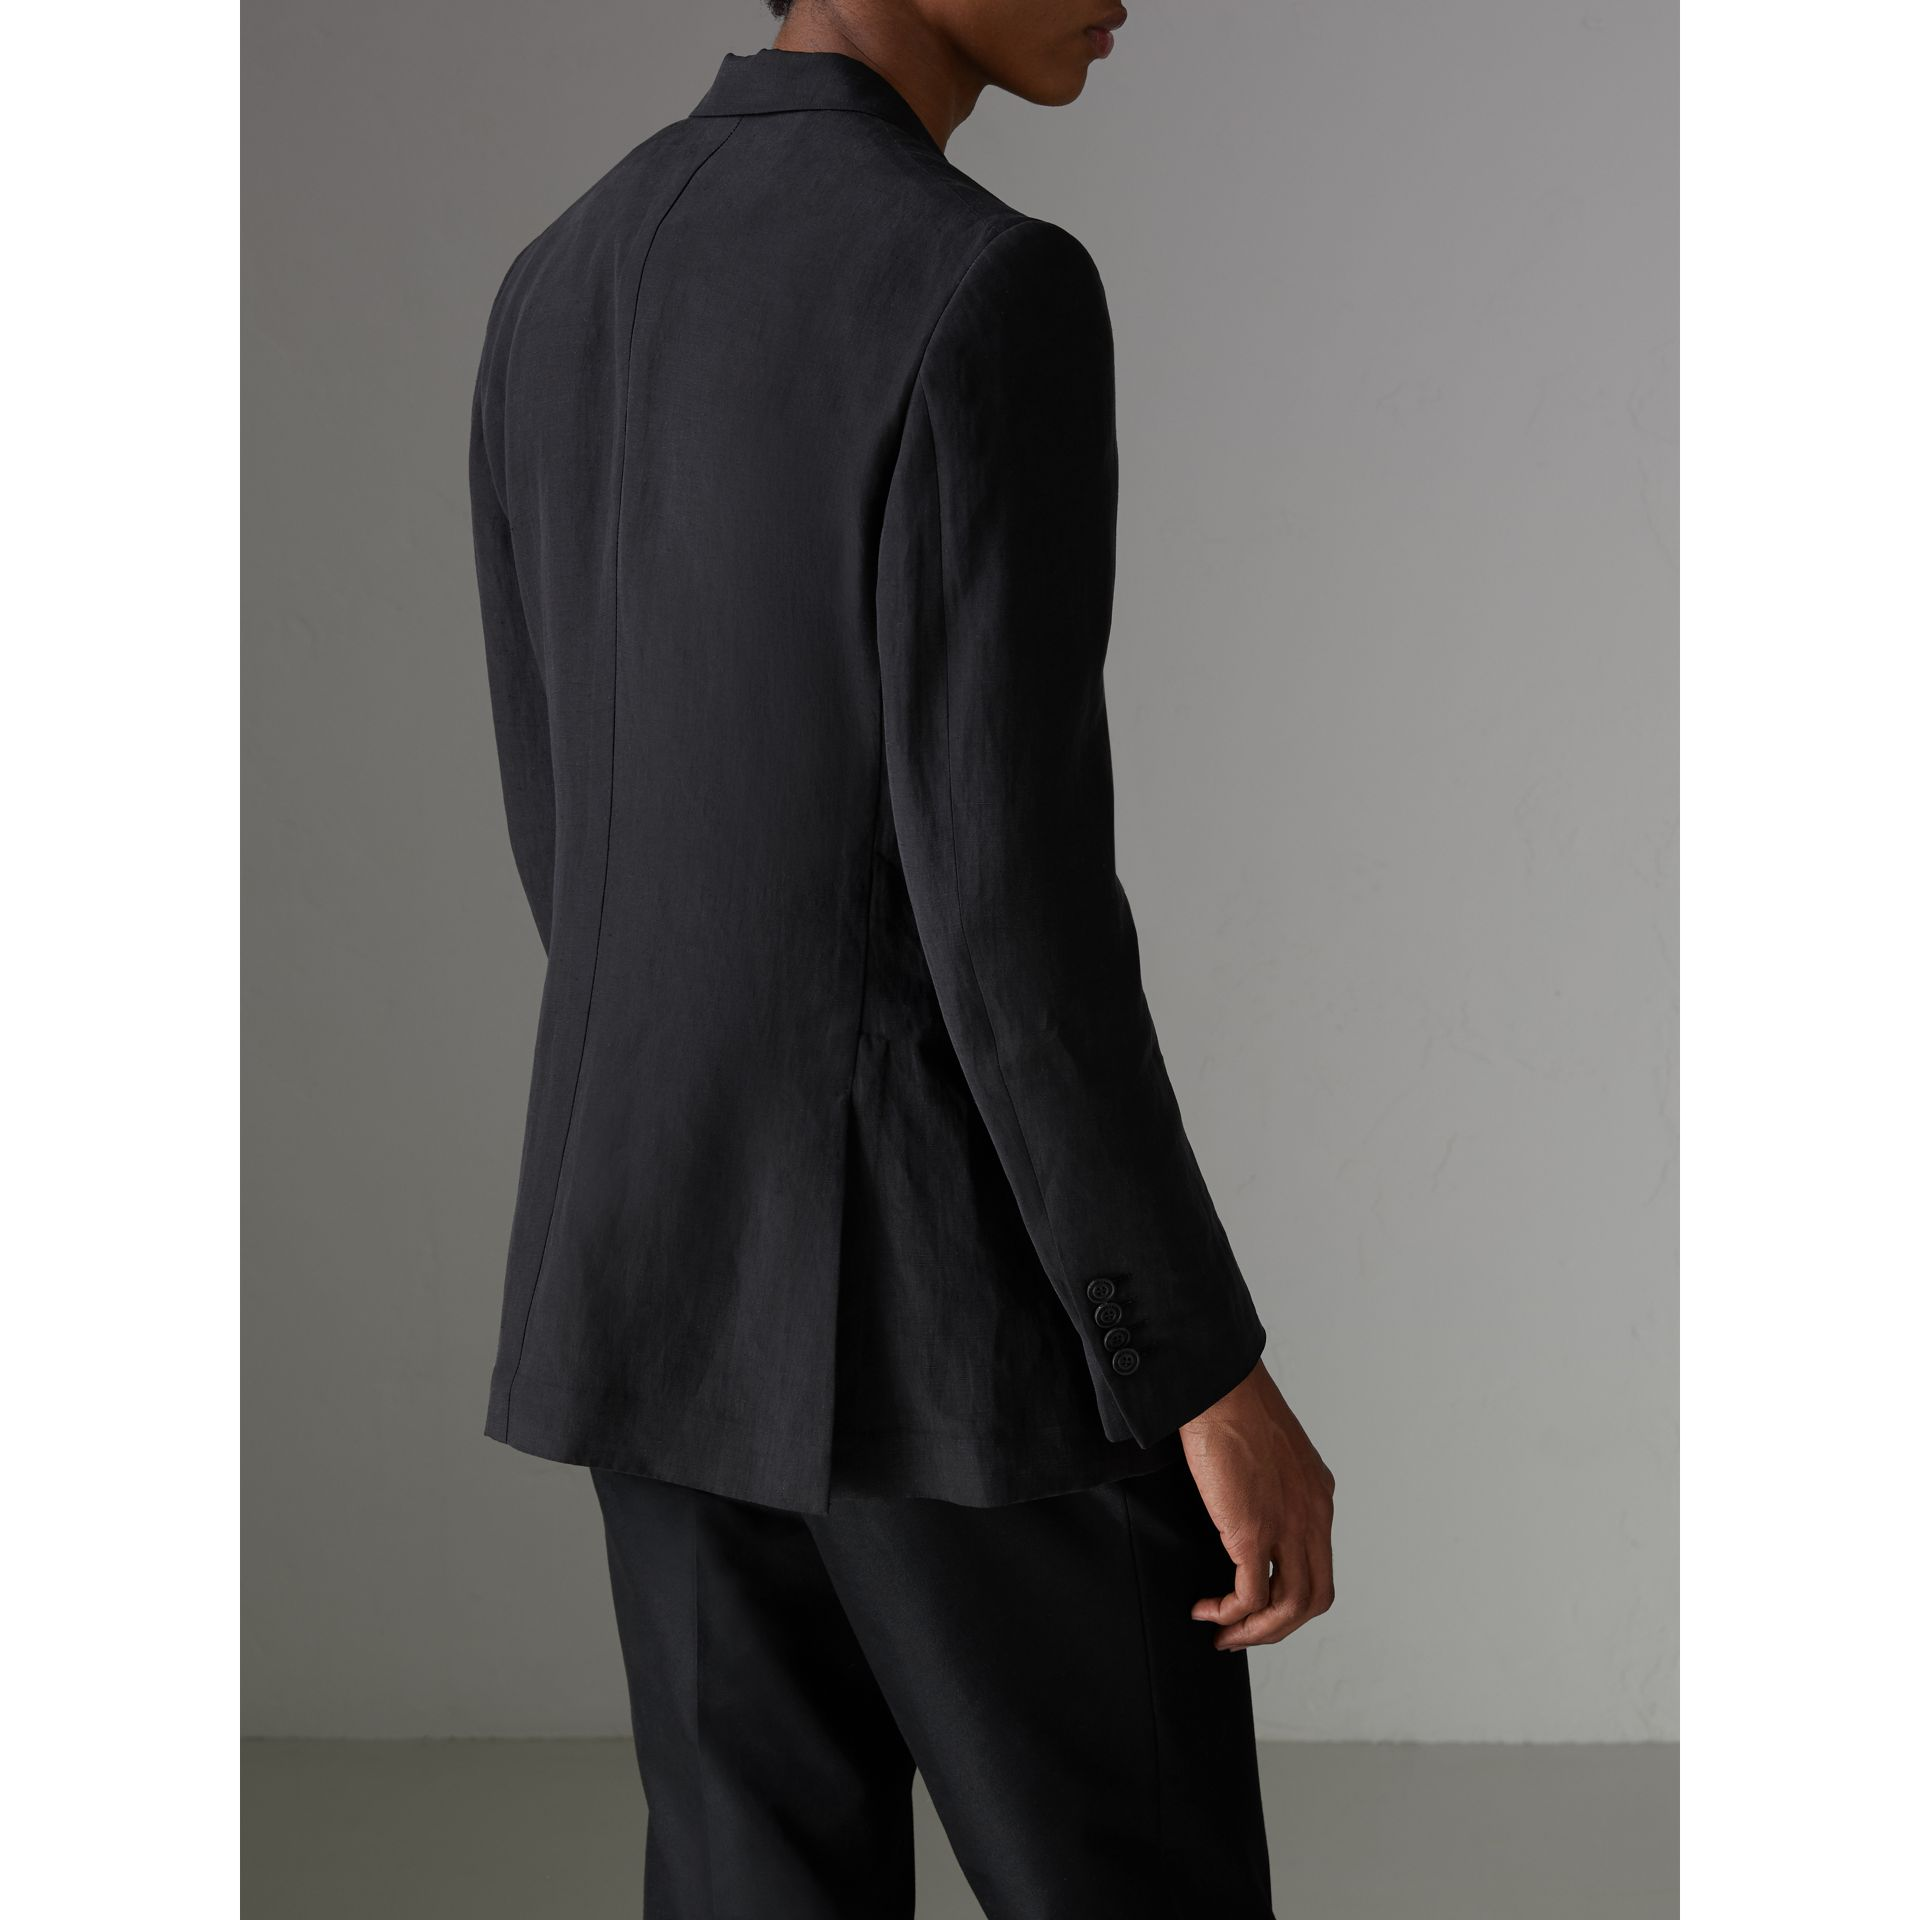 Slim Fit Linen Silk Evening Jacket in Black - Men | Burberry United States - gallery image 2